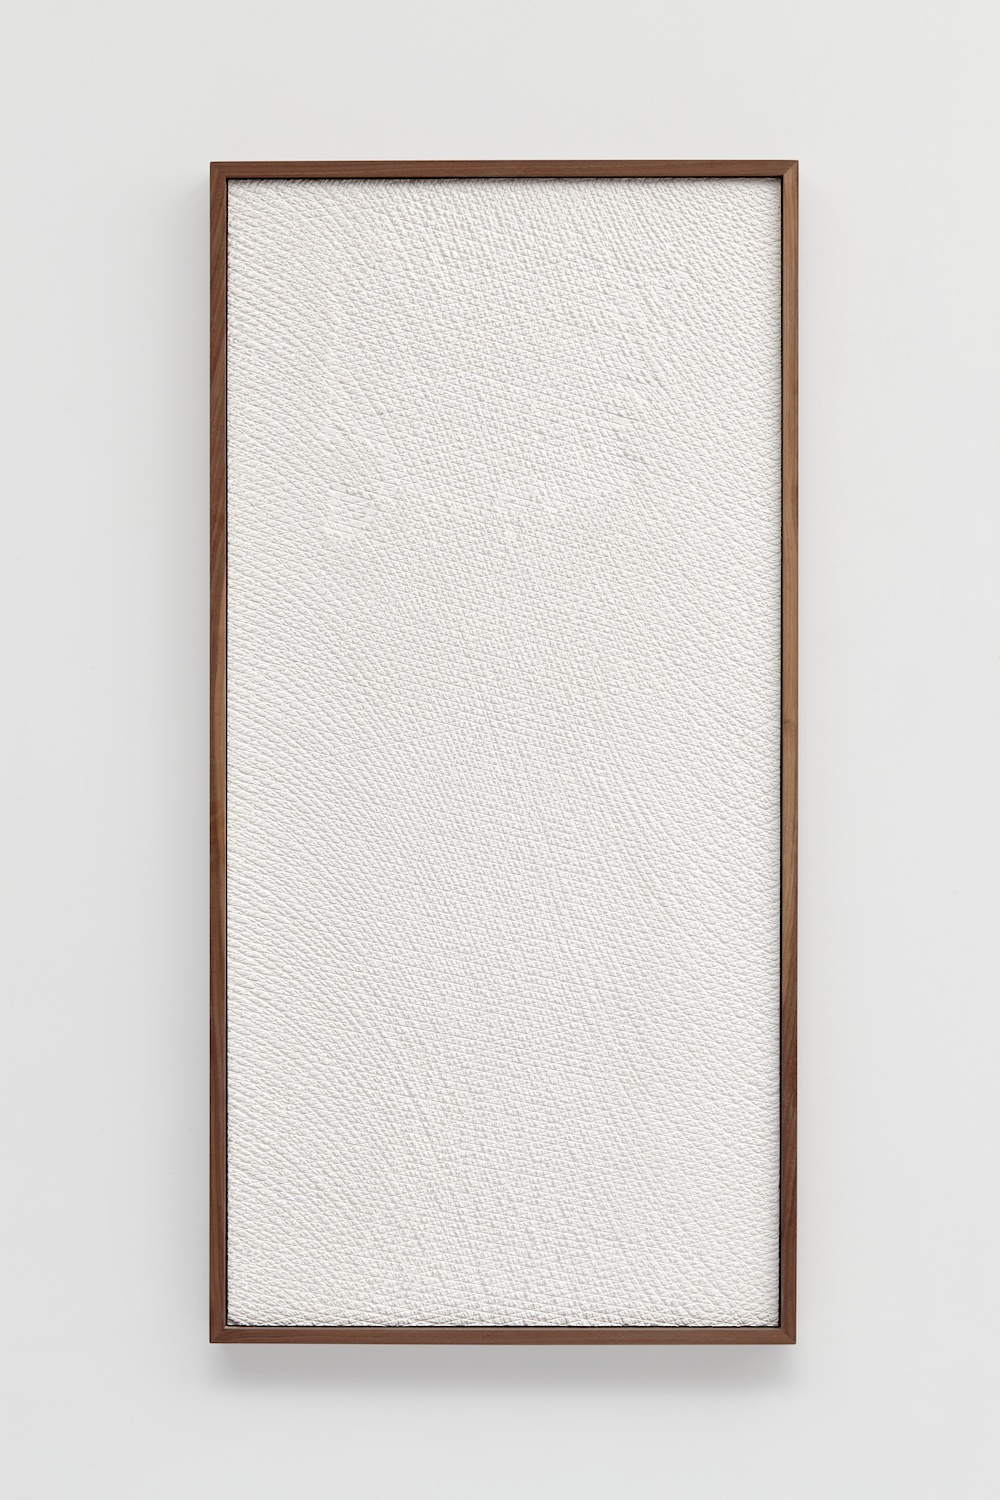 Anthony Pearson  Untitled (Etched Plaster)  2014 Pigmented hydrocal in walnut frame 48 ½h x 24 ½w x 2 ½d in AP358